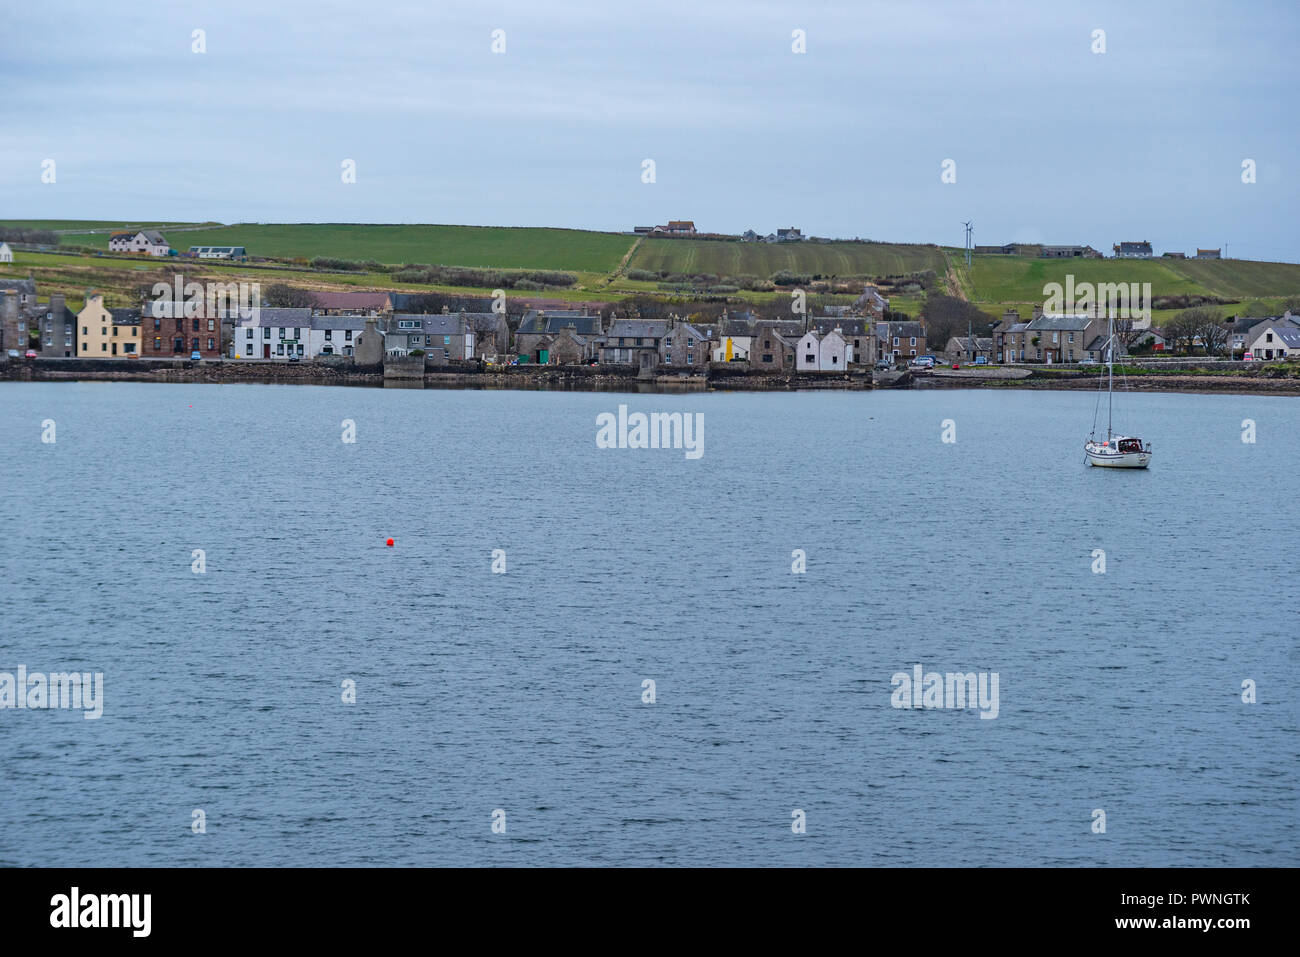 View from a ferry onto the waterfront of Stromness, Orkney Islands, Scotland, Uk - Stock Image